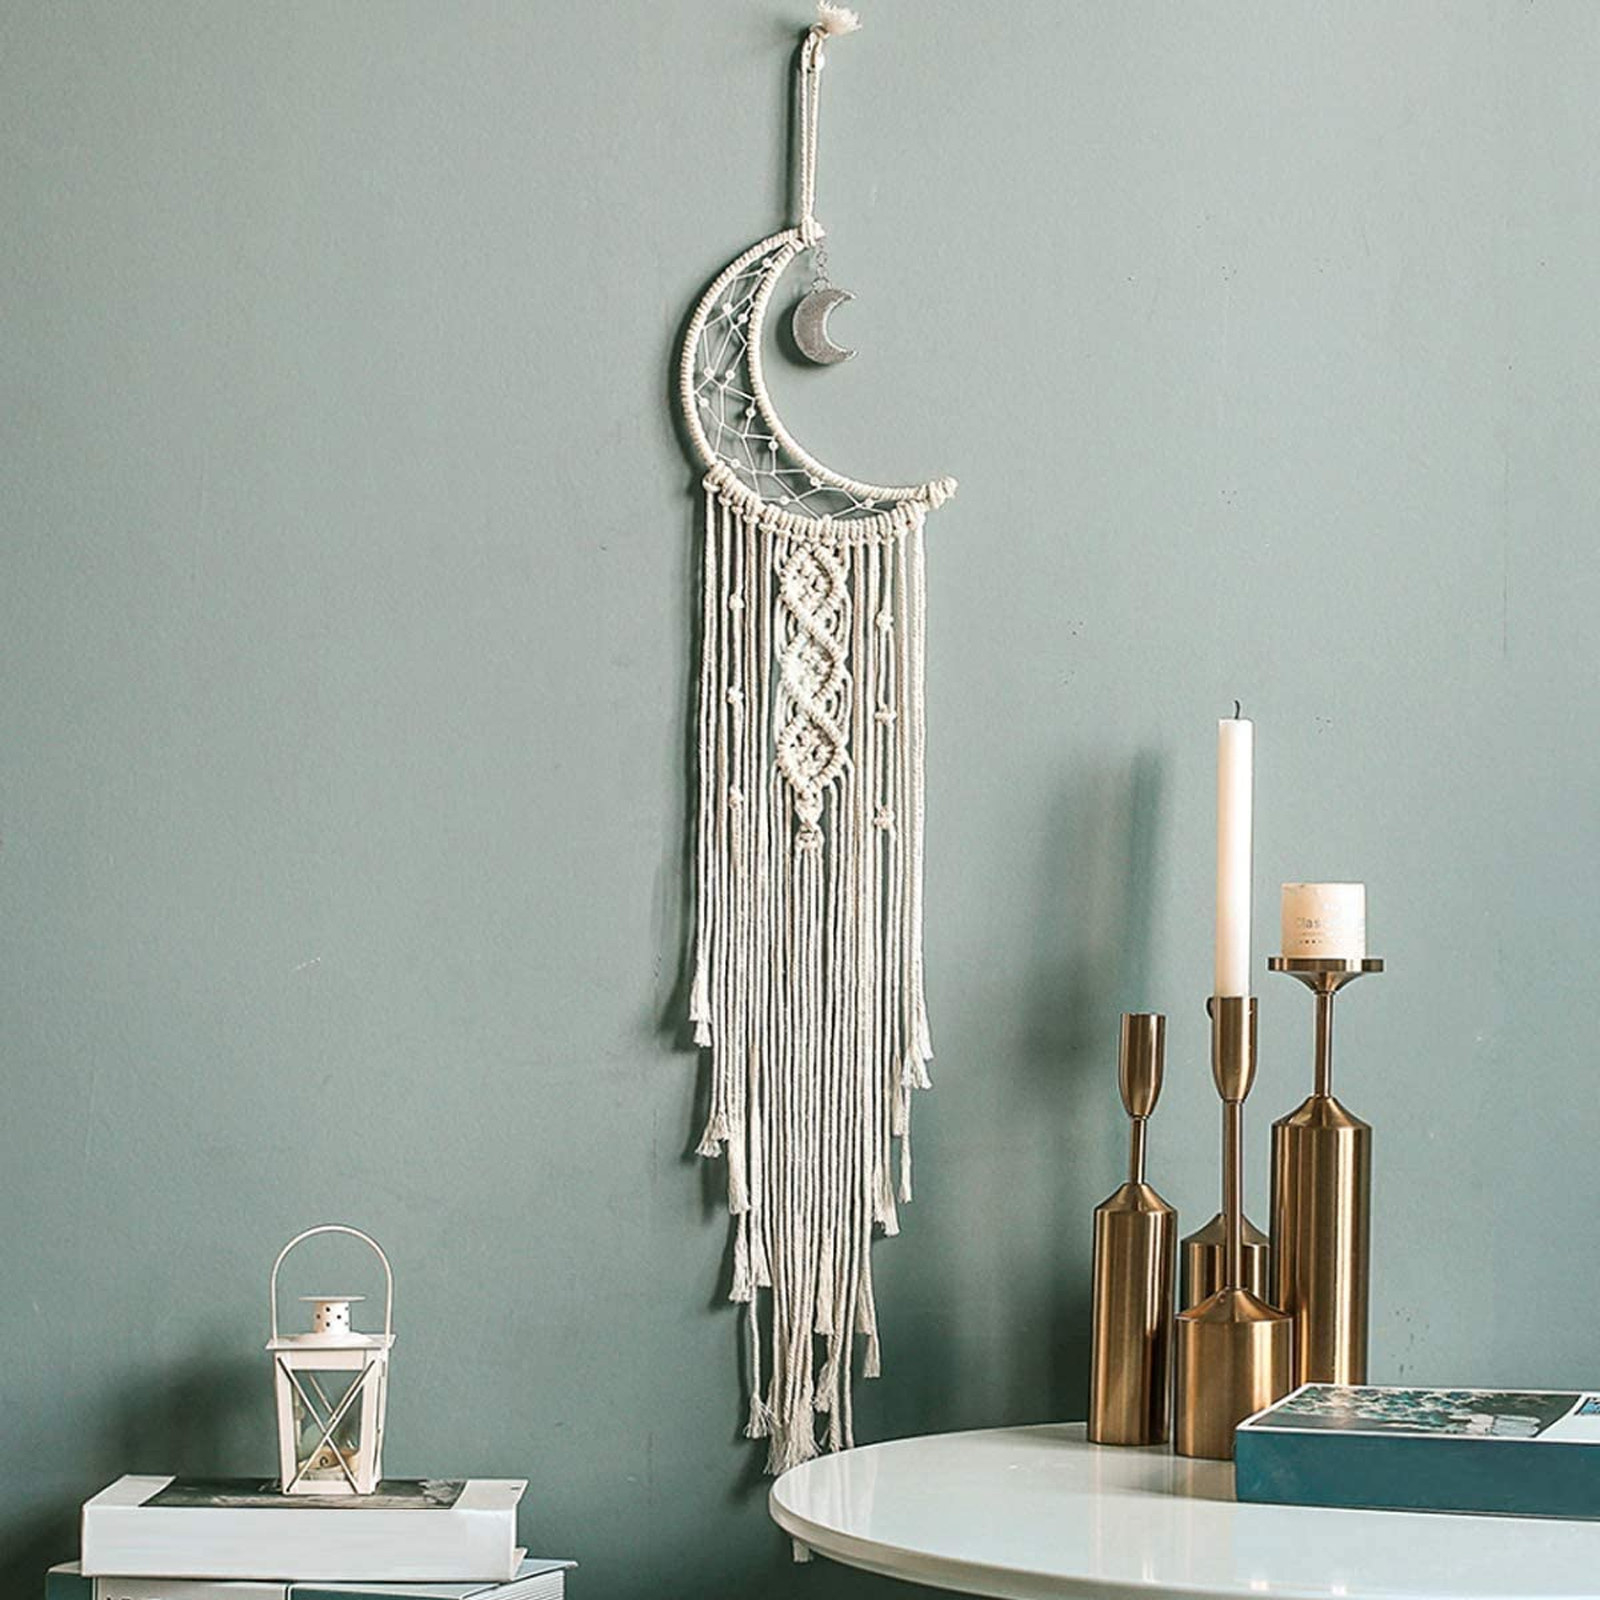 A crescent moon macrame tapestry with tassels and a moon charm